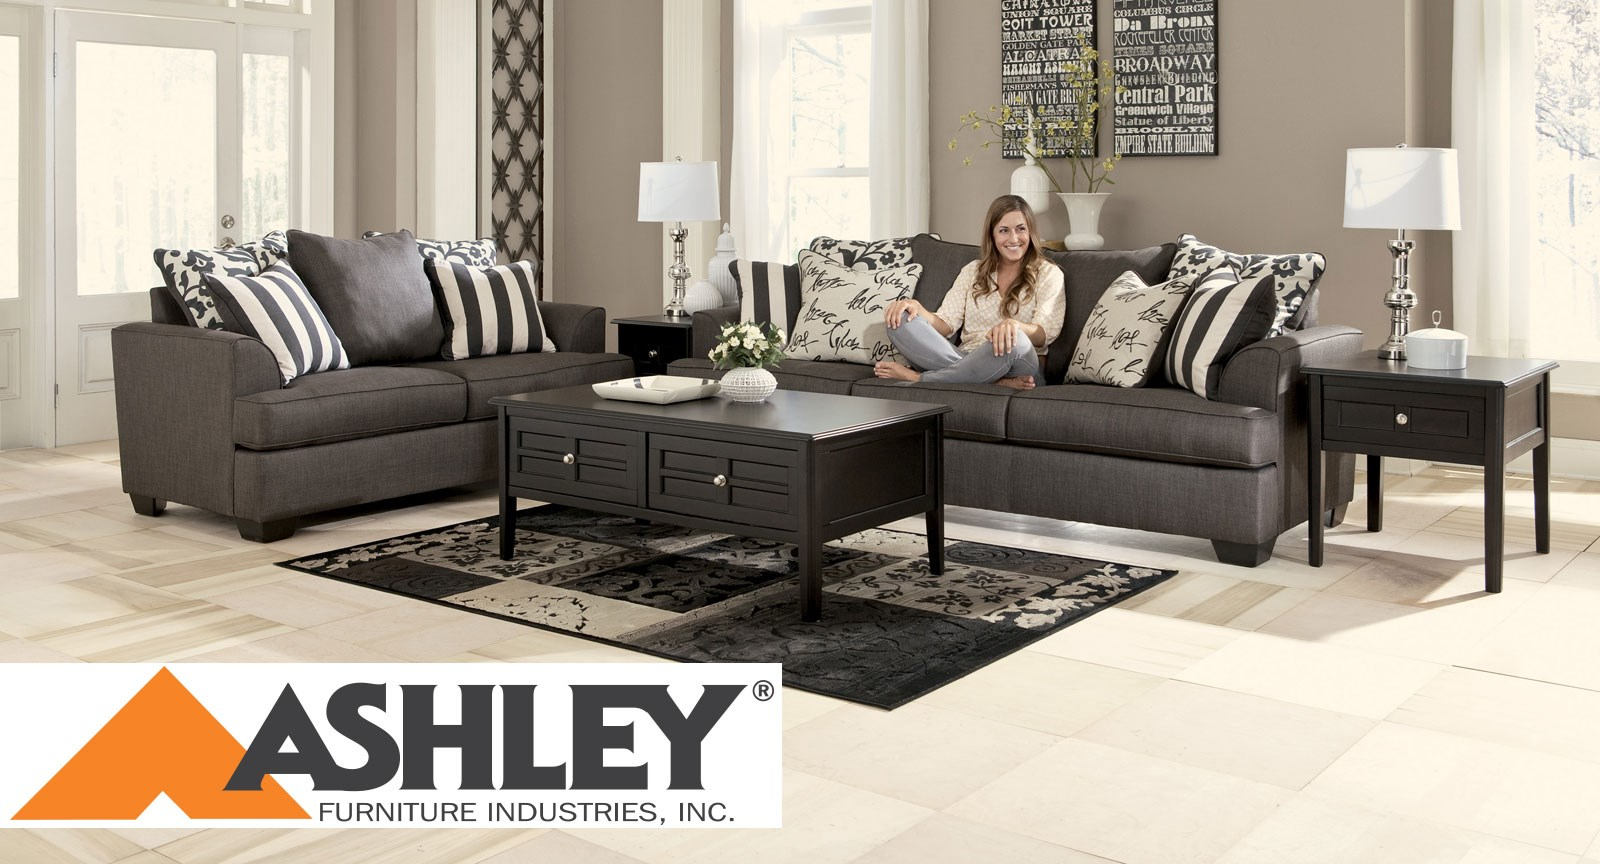 Ashley Furniture At Del Sol Serving The Phoenix Glendale Tempe Scottsdale Avondale Peoria Goodyear Litchfield Arizona Area